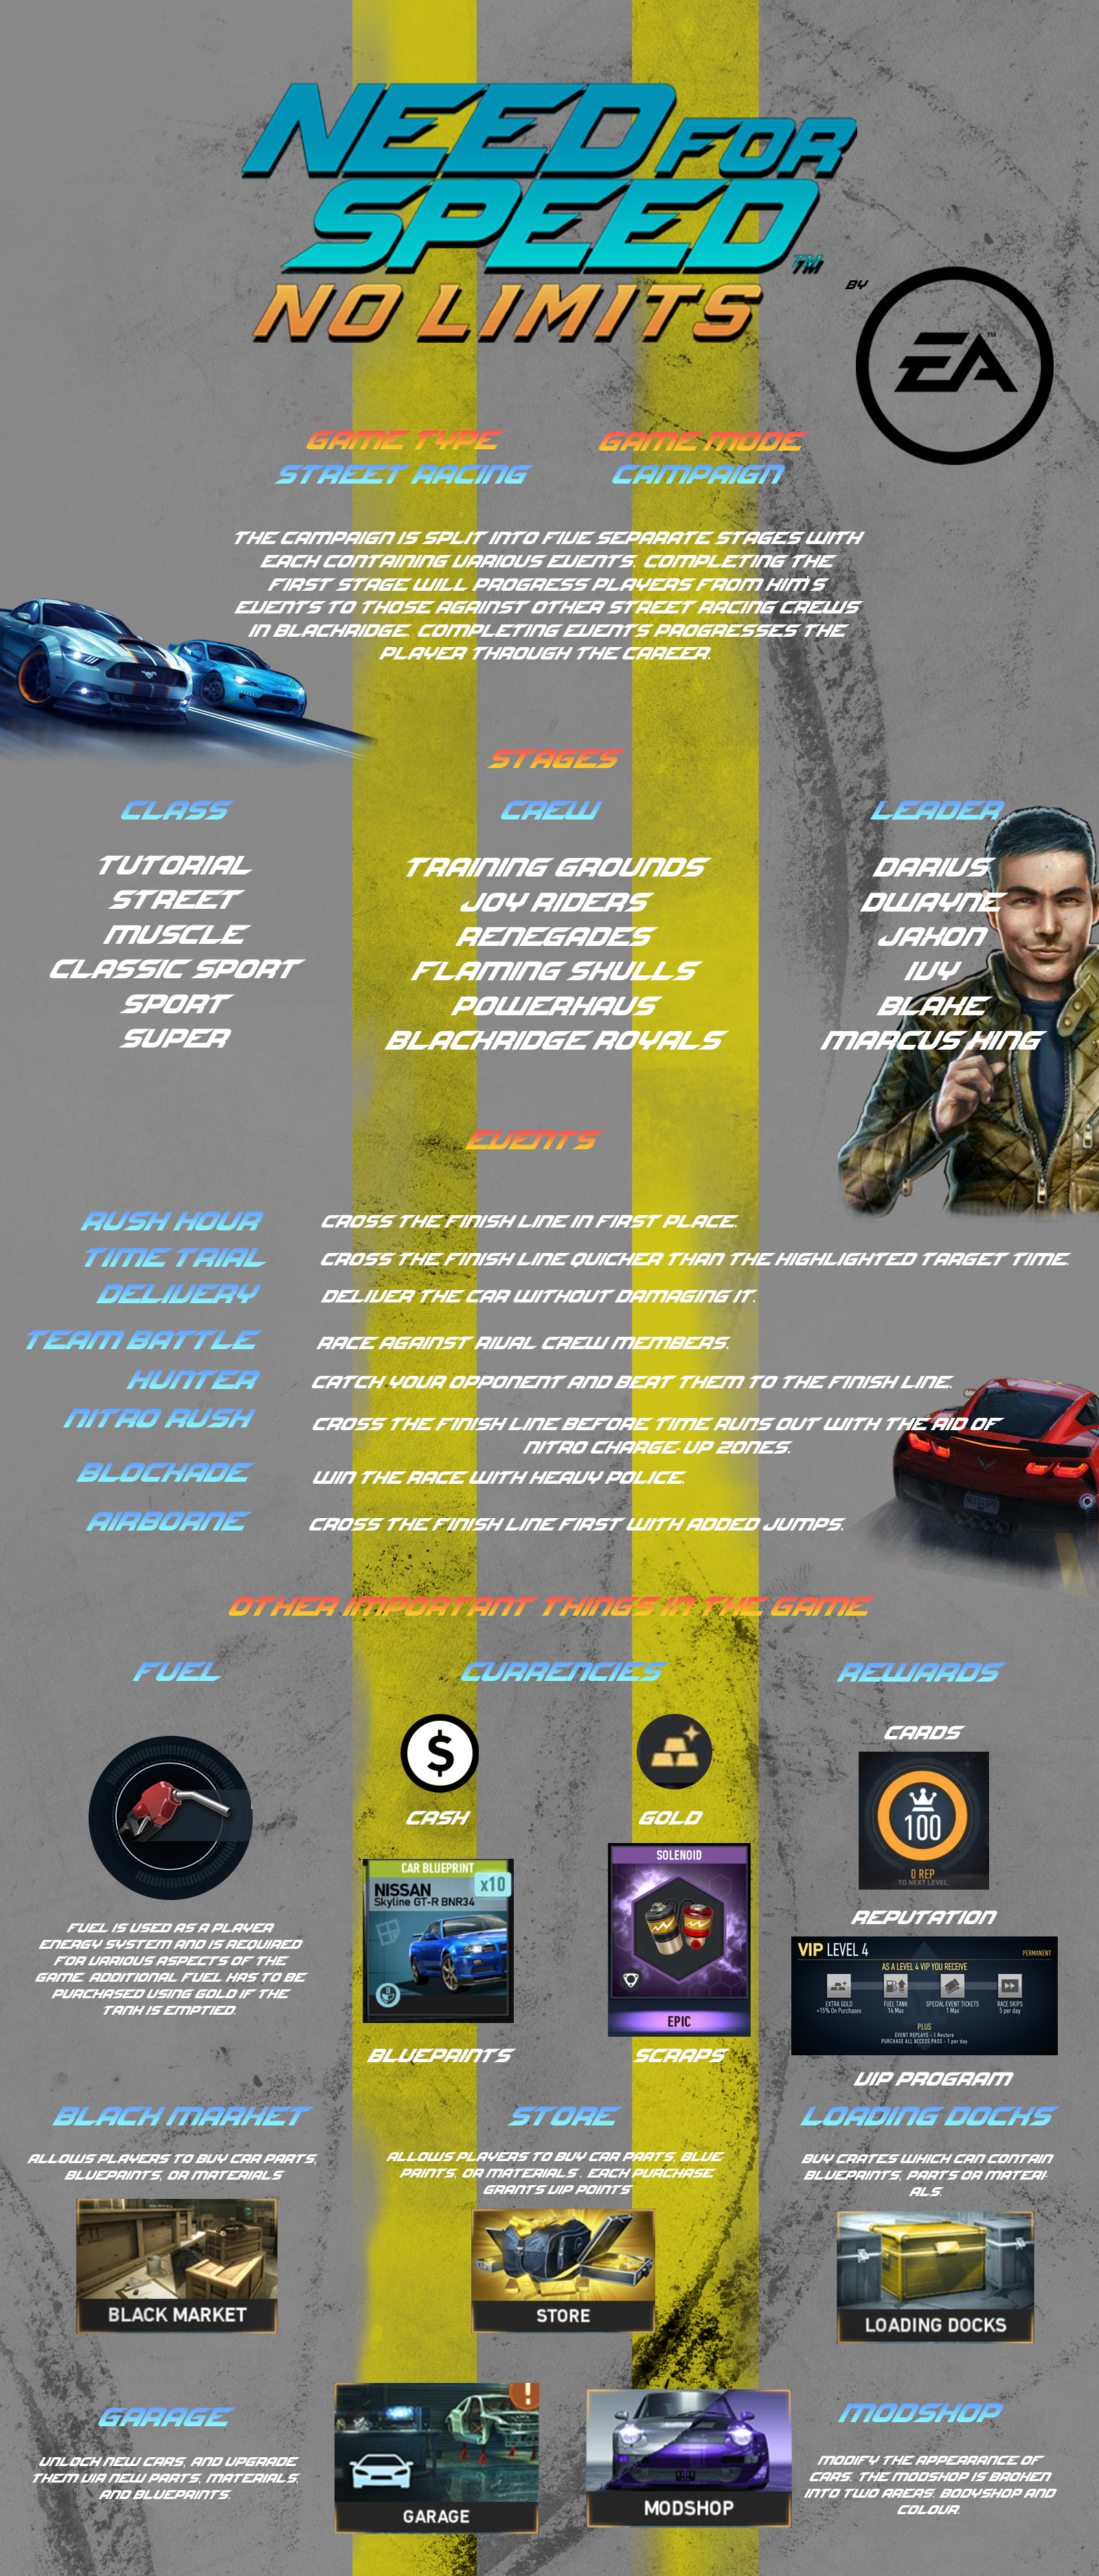 Need for Speed Infographic Image